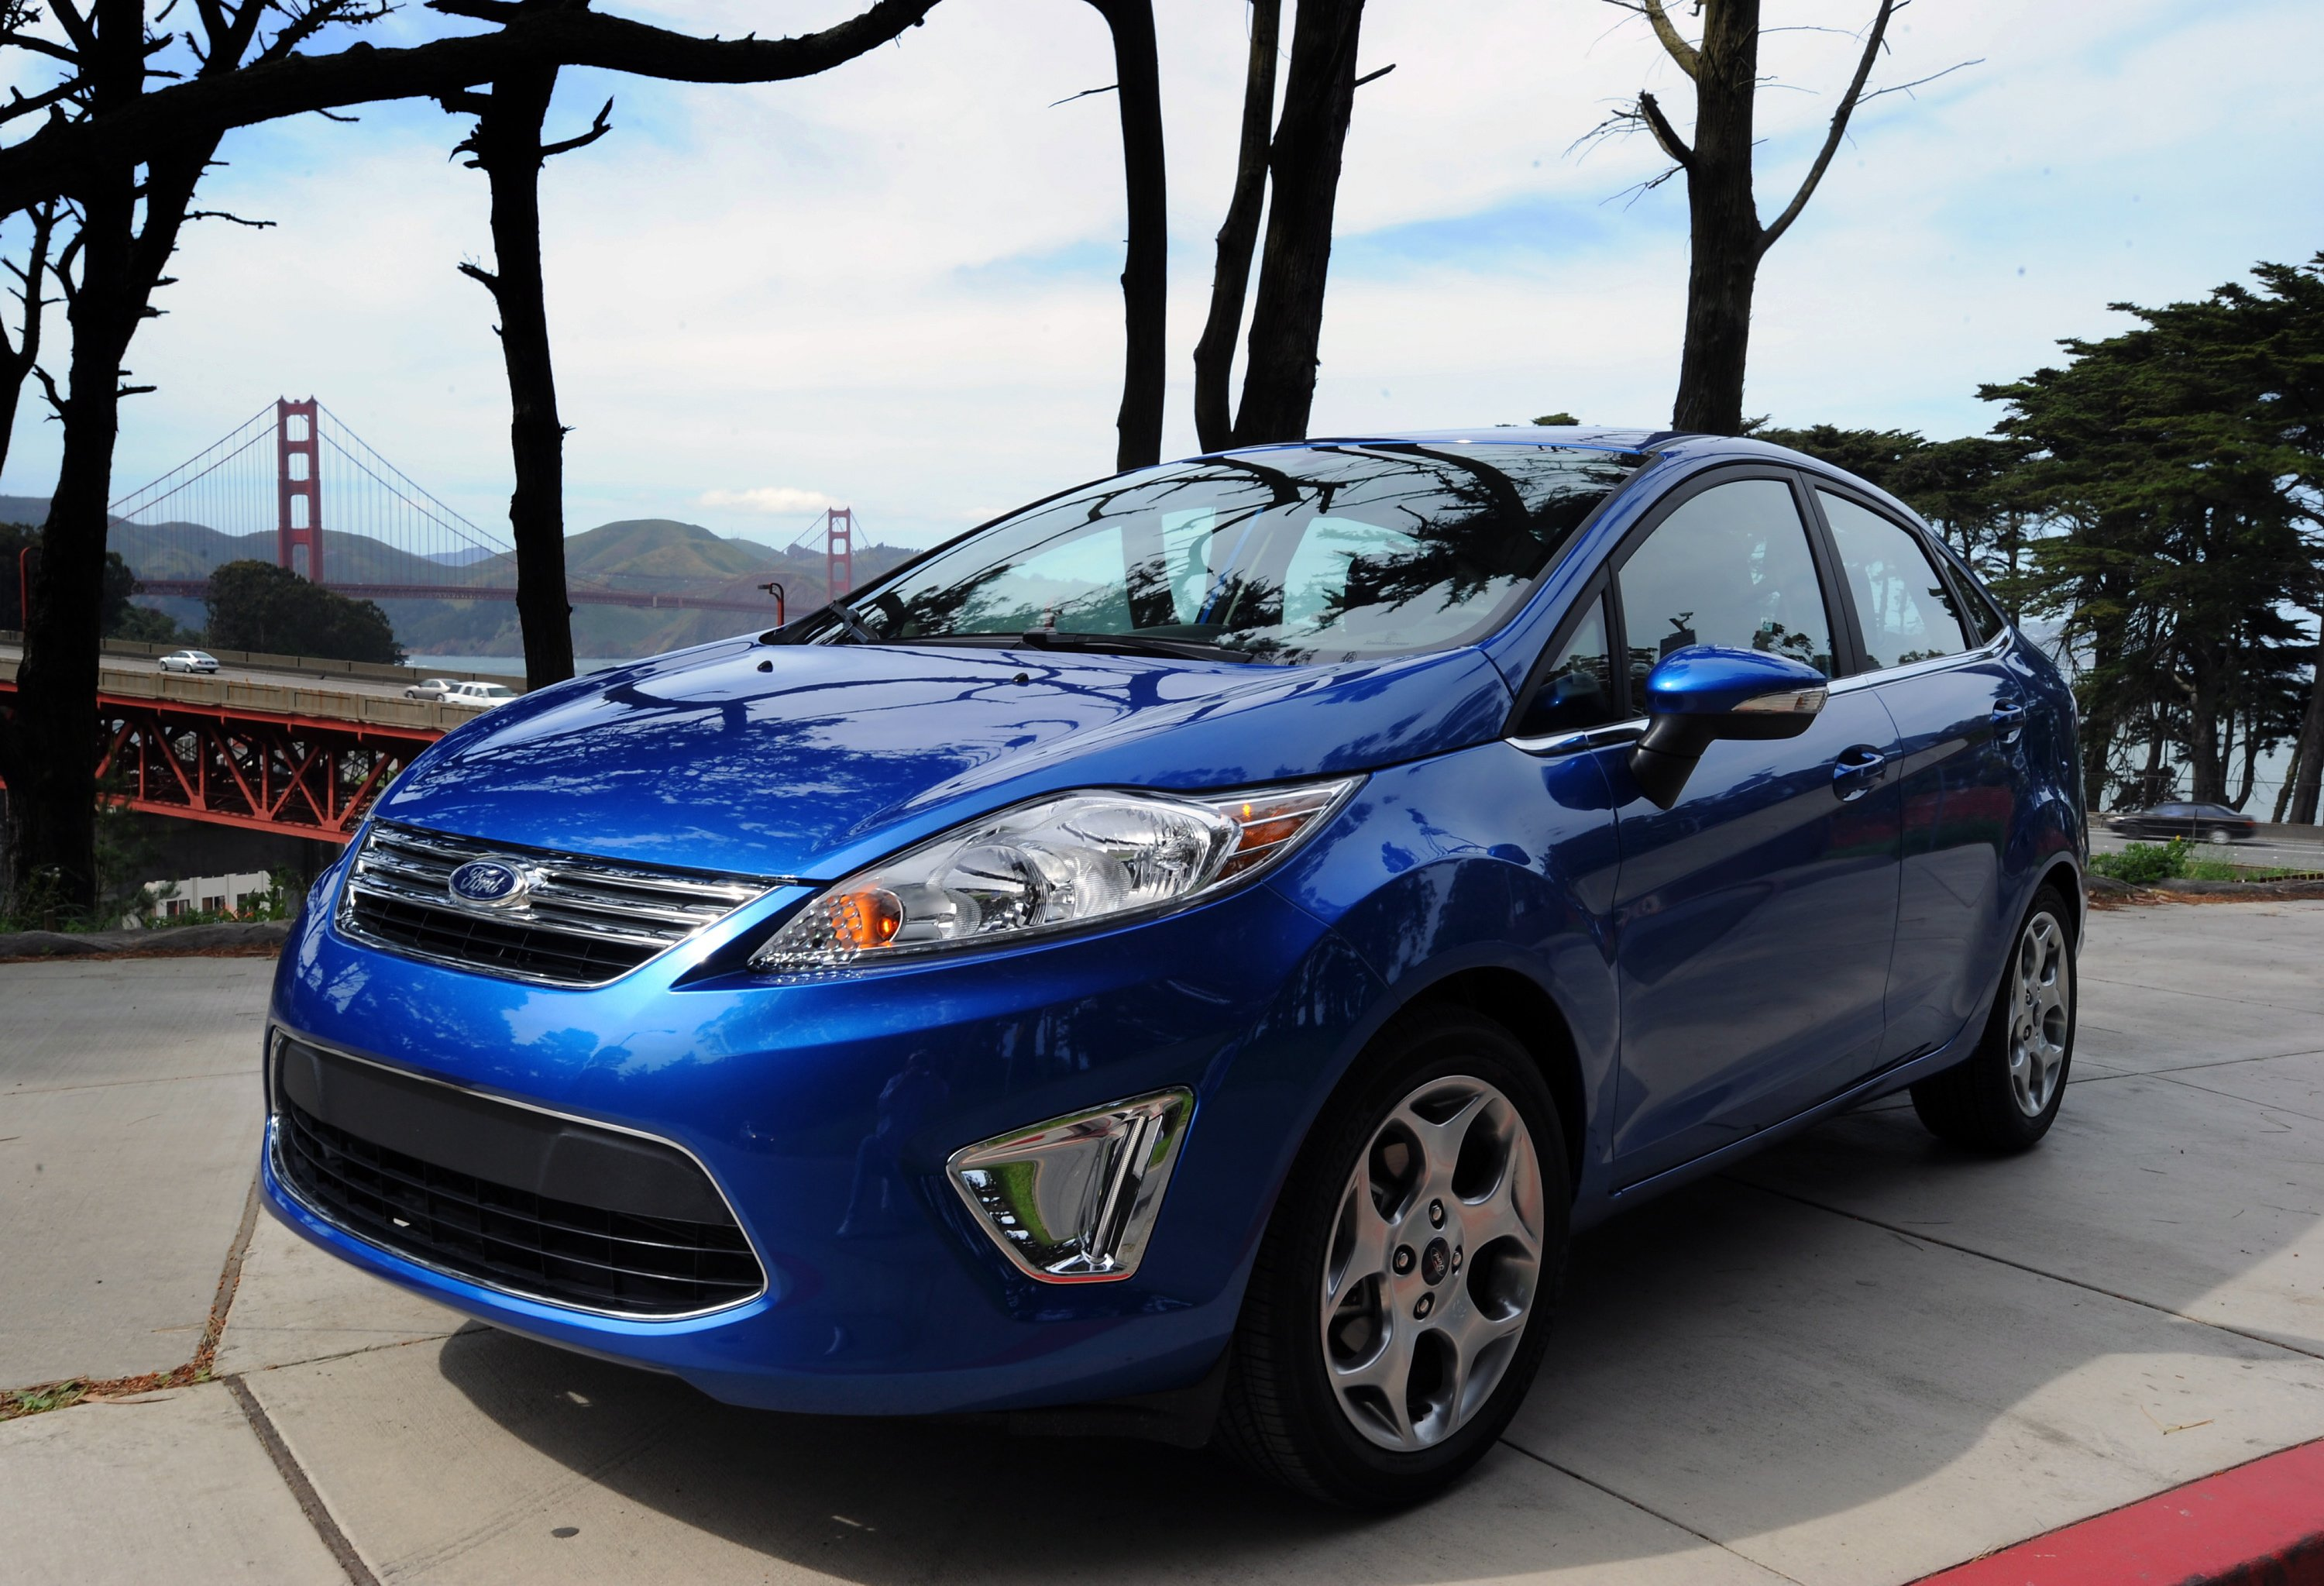 review 2011 ford fiesta the truth about cars. Black Bedroom Furniture Sets. Home Design Ideas